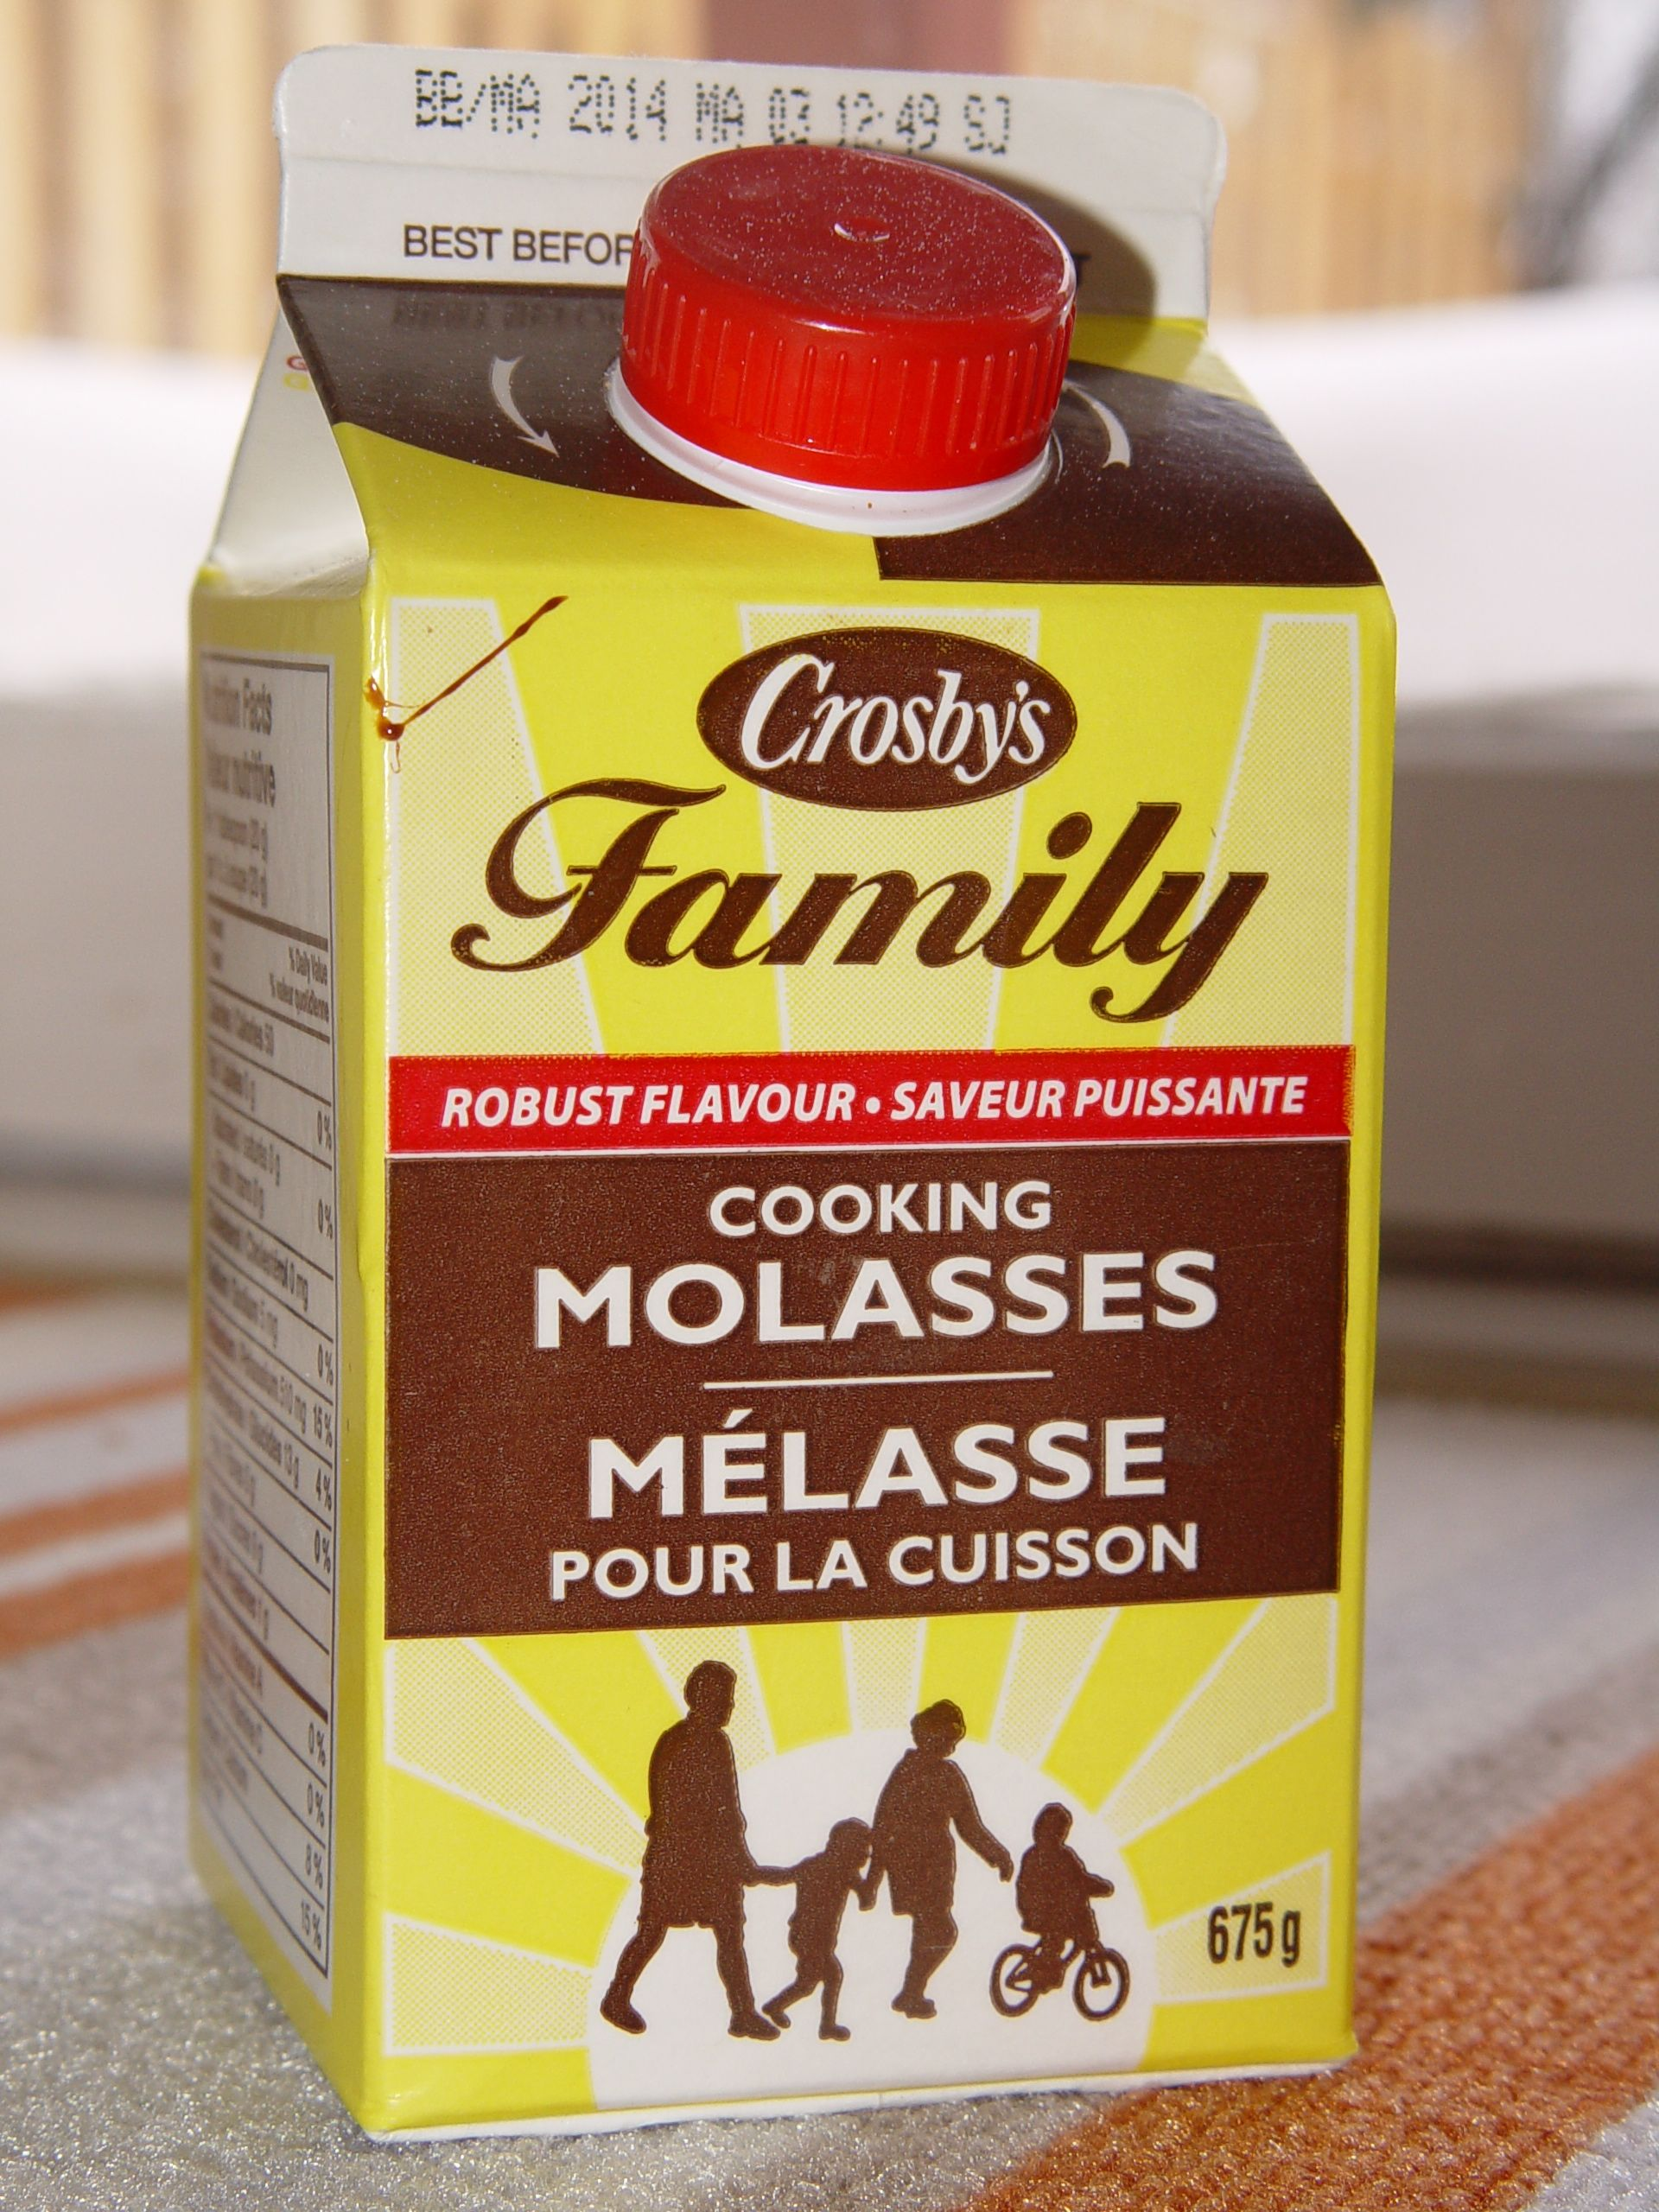 What is Molasses?